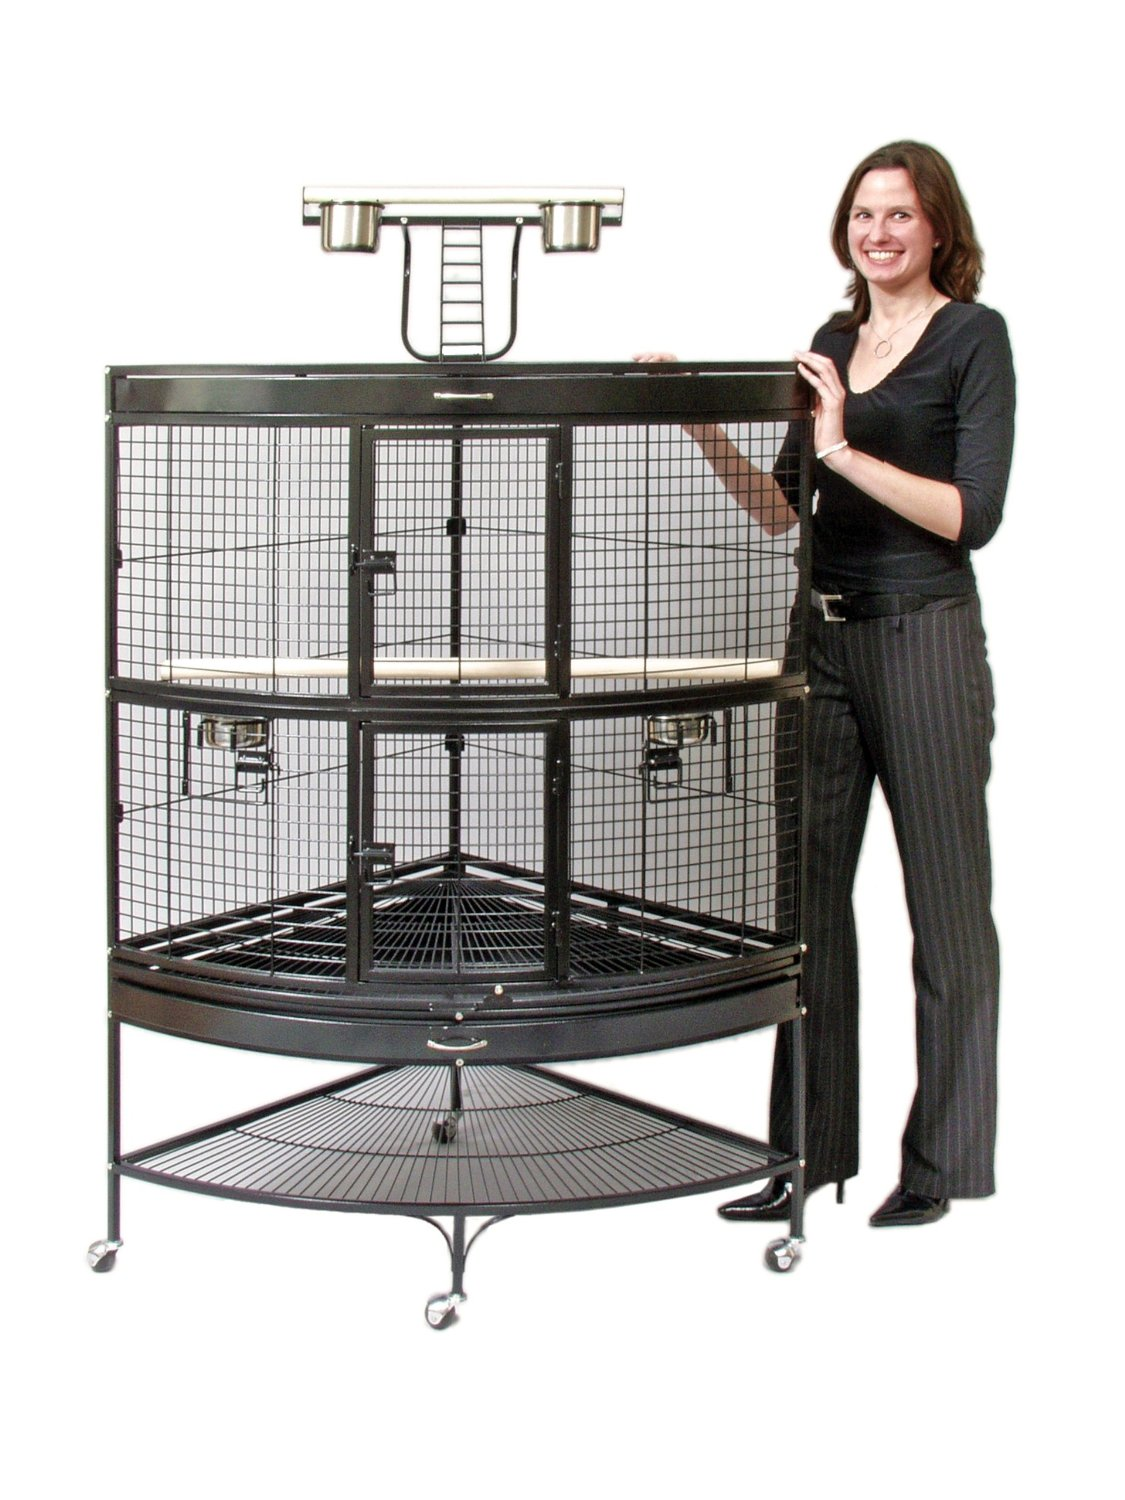 Our large corner cage saves space in your home while providing plenty of room for your bird Four stainless steel cups and two wood perches included Cage-top playstand adds to your birds living area Space saving shelf can be used to store toys, treats and more 45-Inch long, 30-inch wide, 69-inch high with 7/8-inch wire spacing